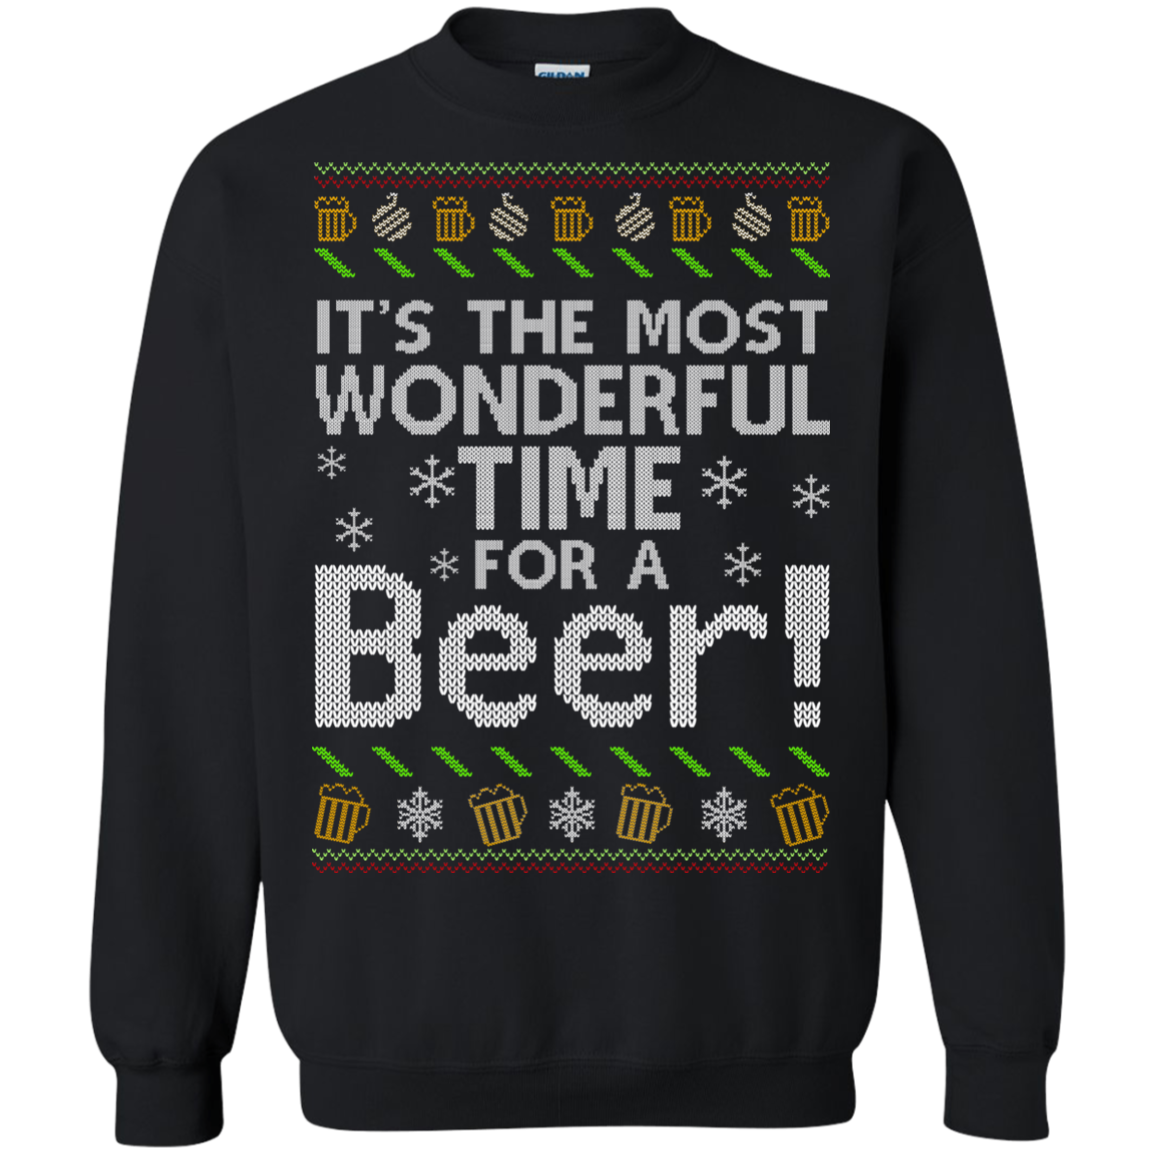 clipart royalty free download Free ugly christmas sweater clipart. Sweaters most wonderful time